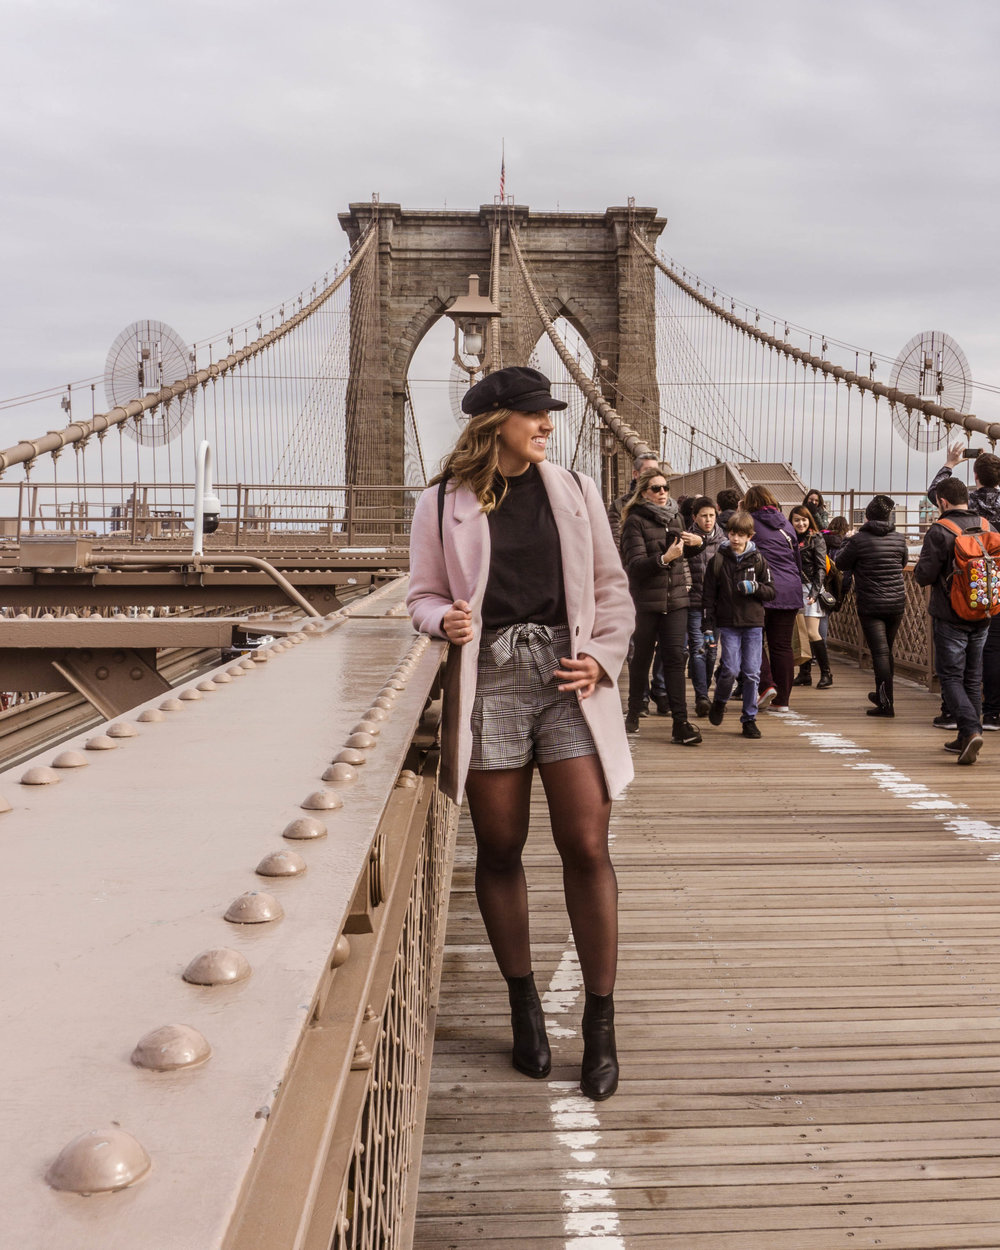 Brooklyn Bridge - The Adventure Decade